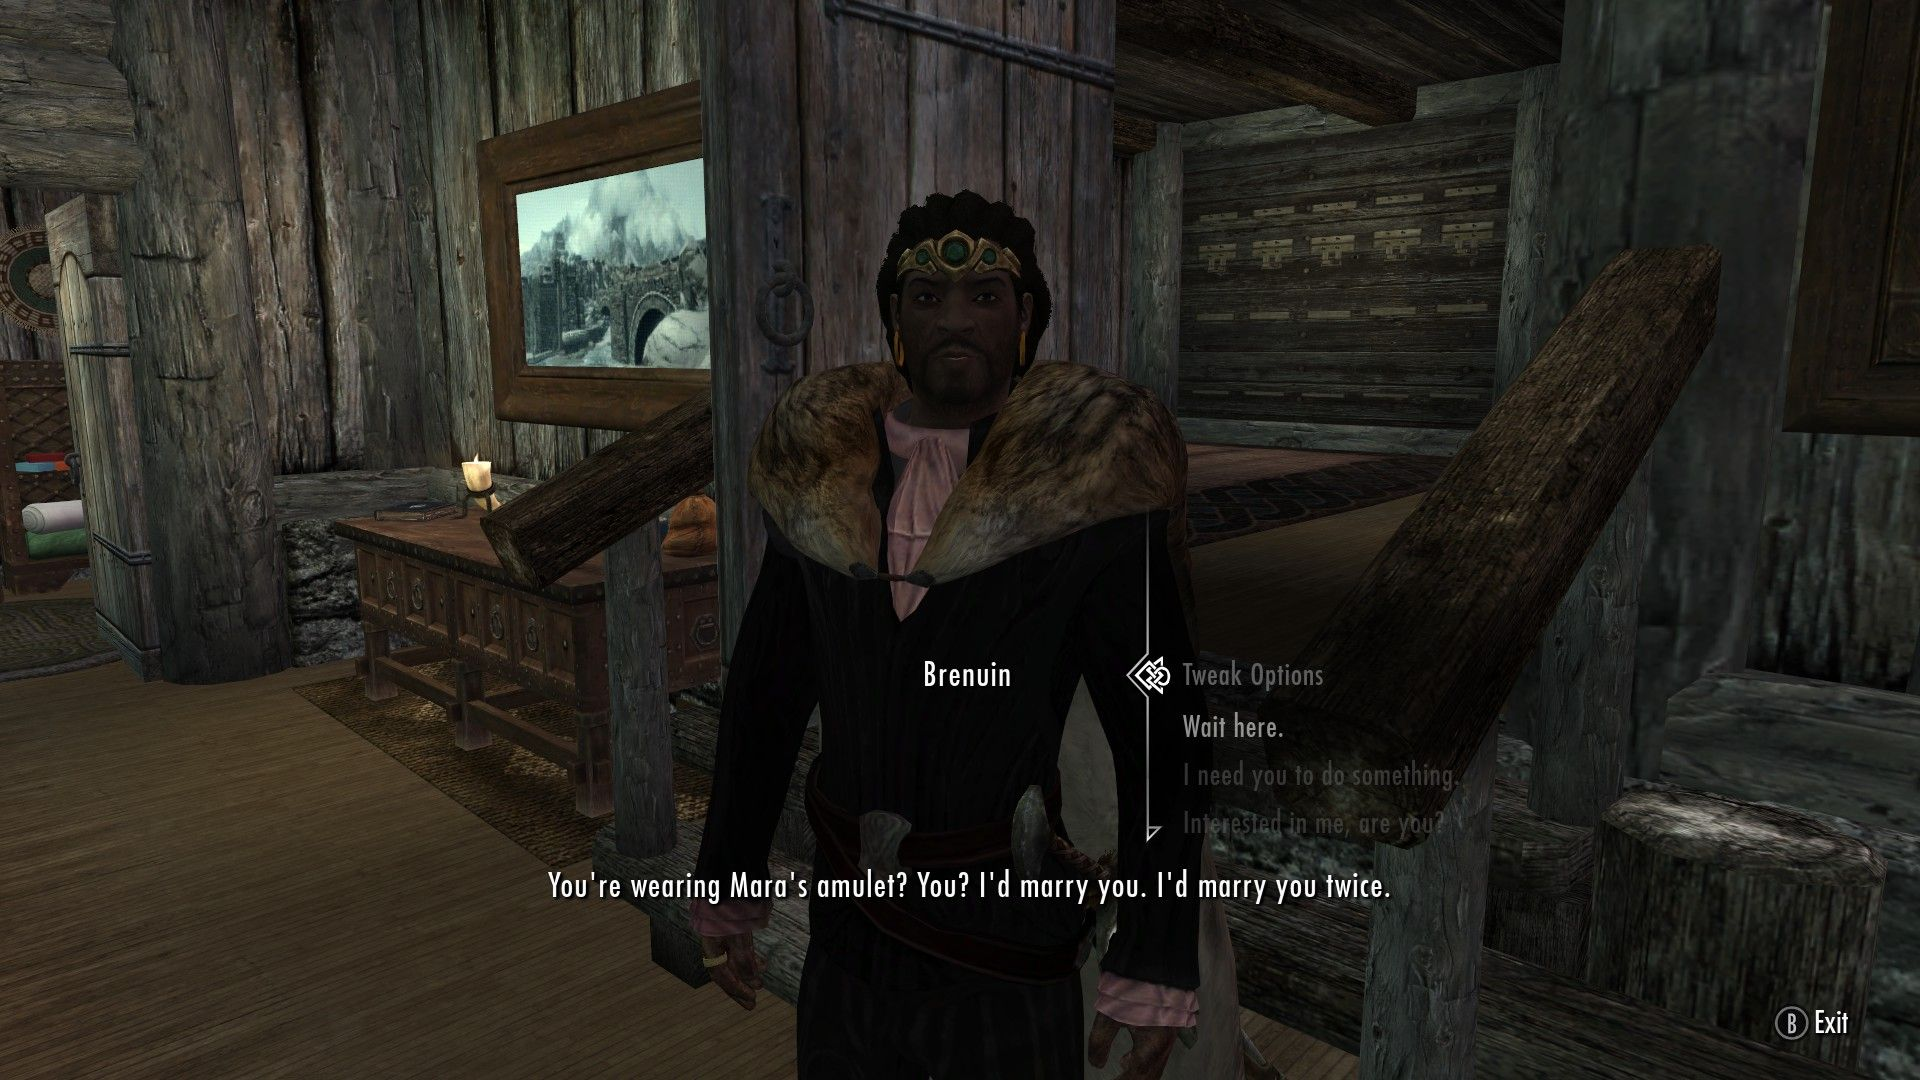 So I married Whiterun's town drunk #games #Skyrim